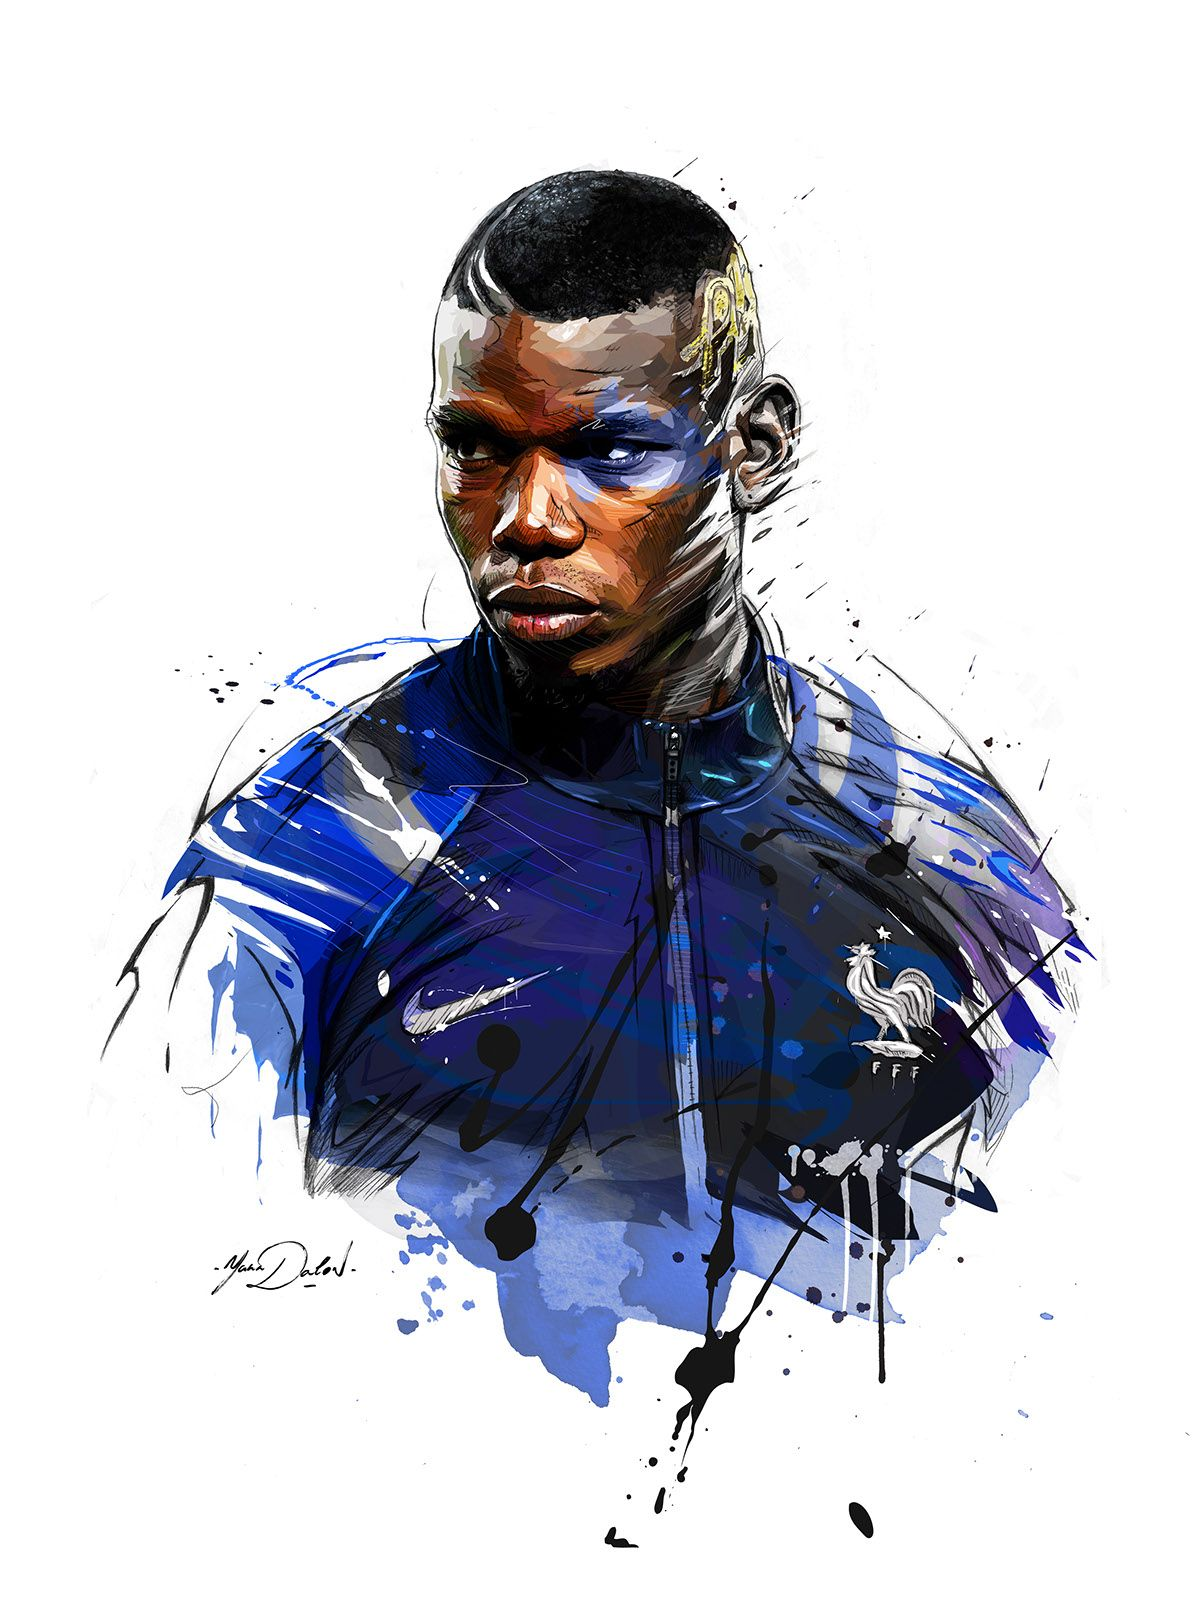 Espn Paul Pogba On Behance Paul Pogba Soccer Team Men S Soccer Teams